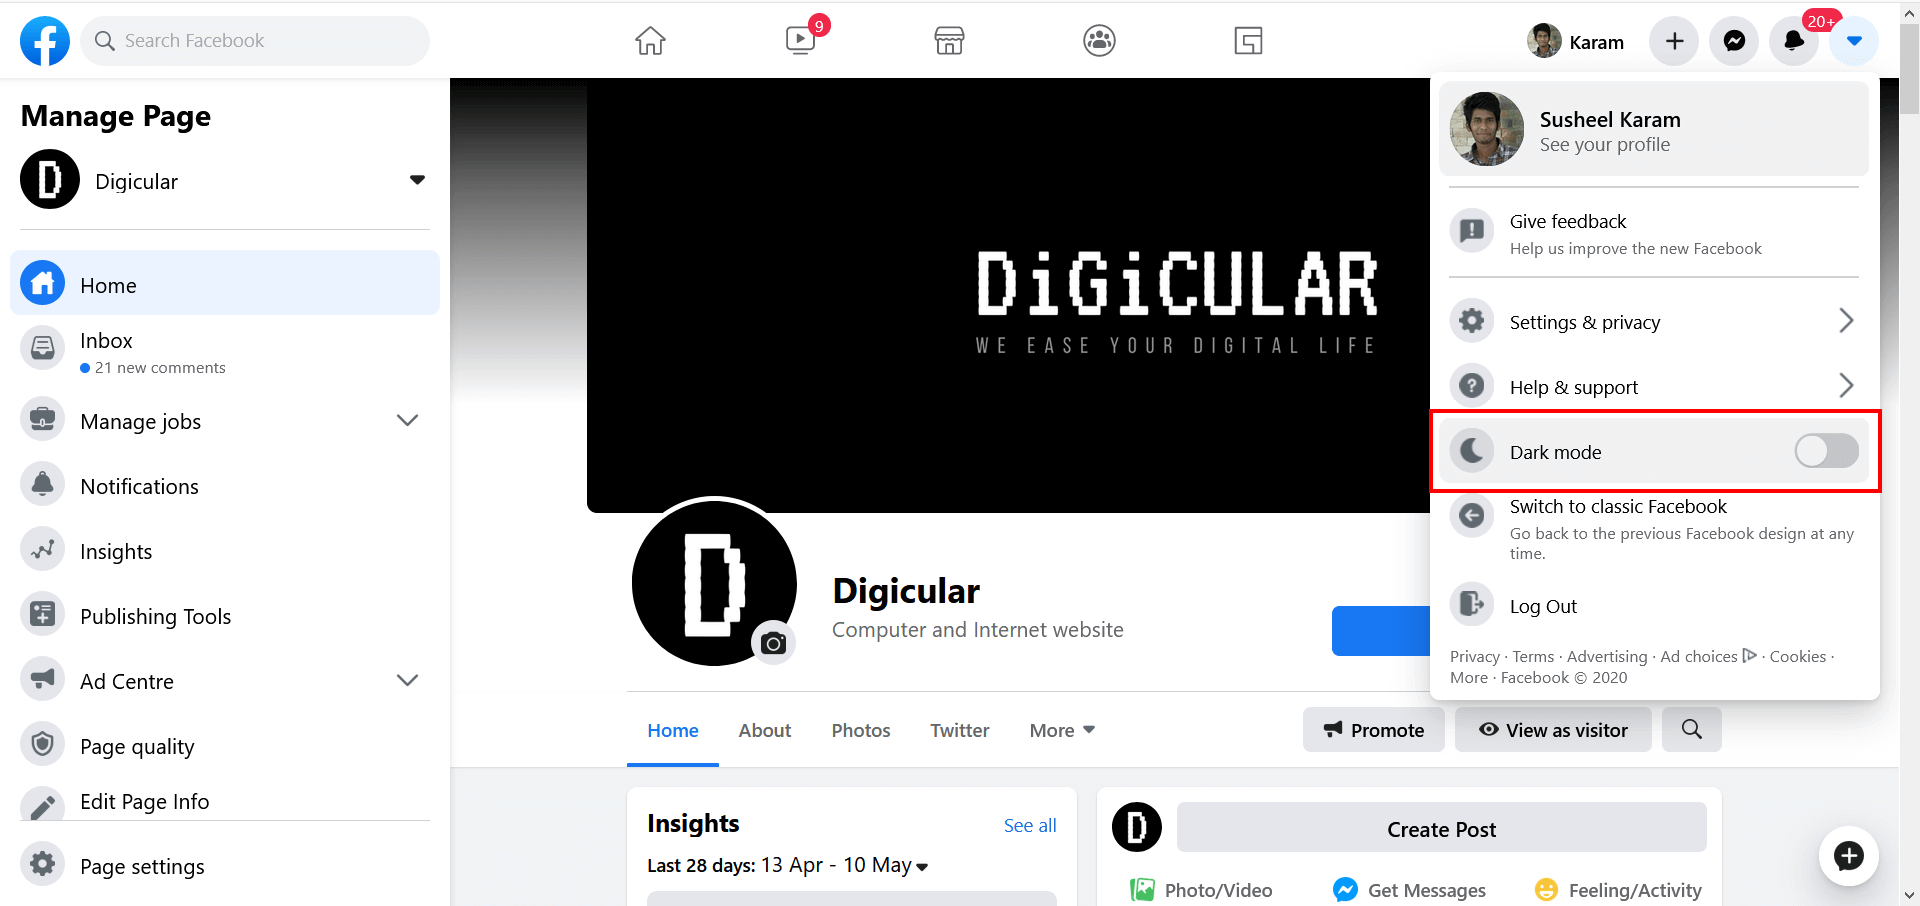 Enable_dark_mode_facebook_desktop_interface_digicular